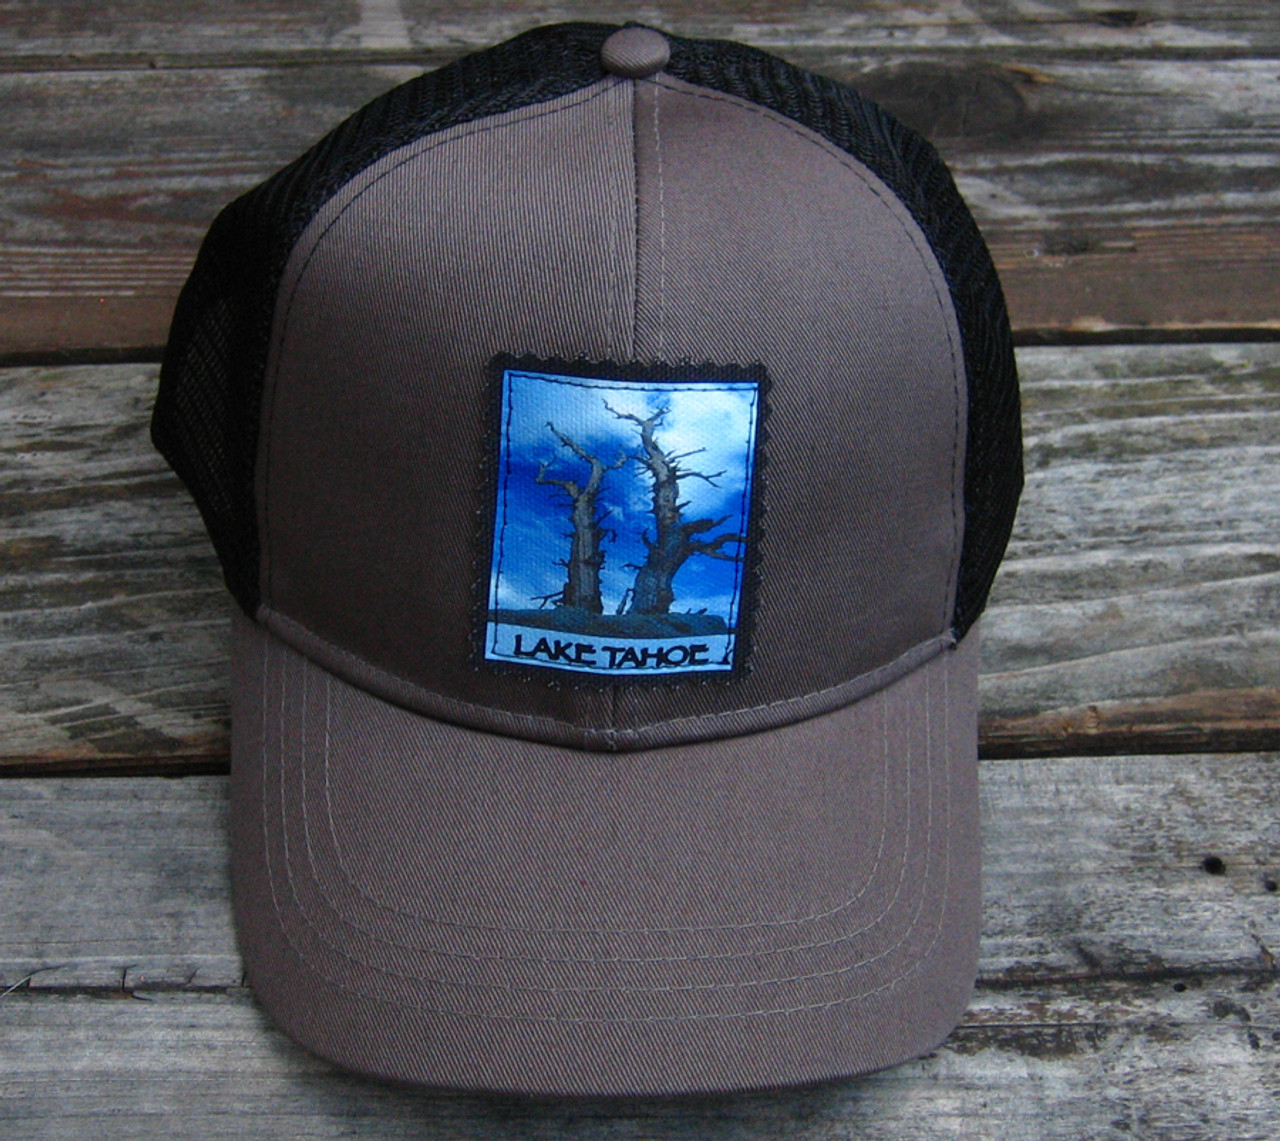 dfcde8eee3f Snags above Lake Tahoe Keep on Truckin Organic Cotton Trucker Hat ...